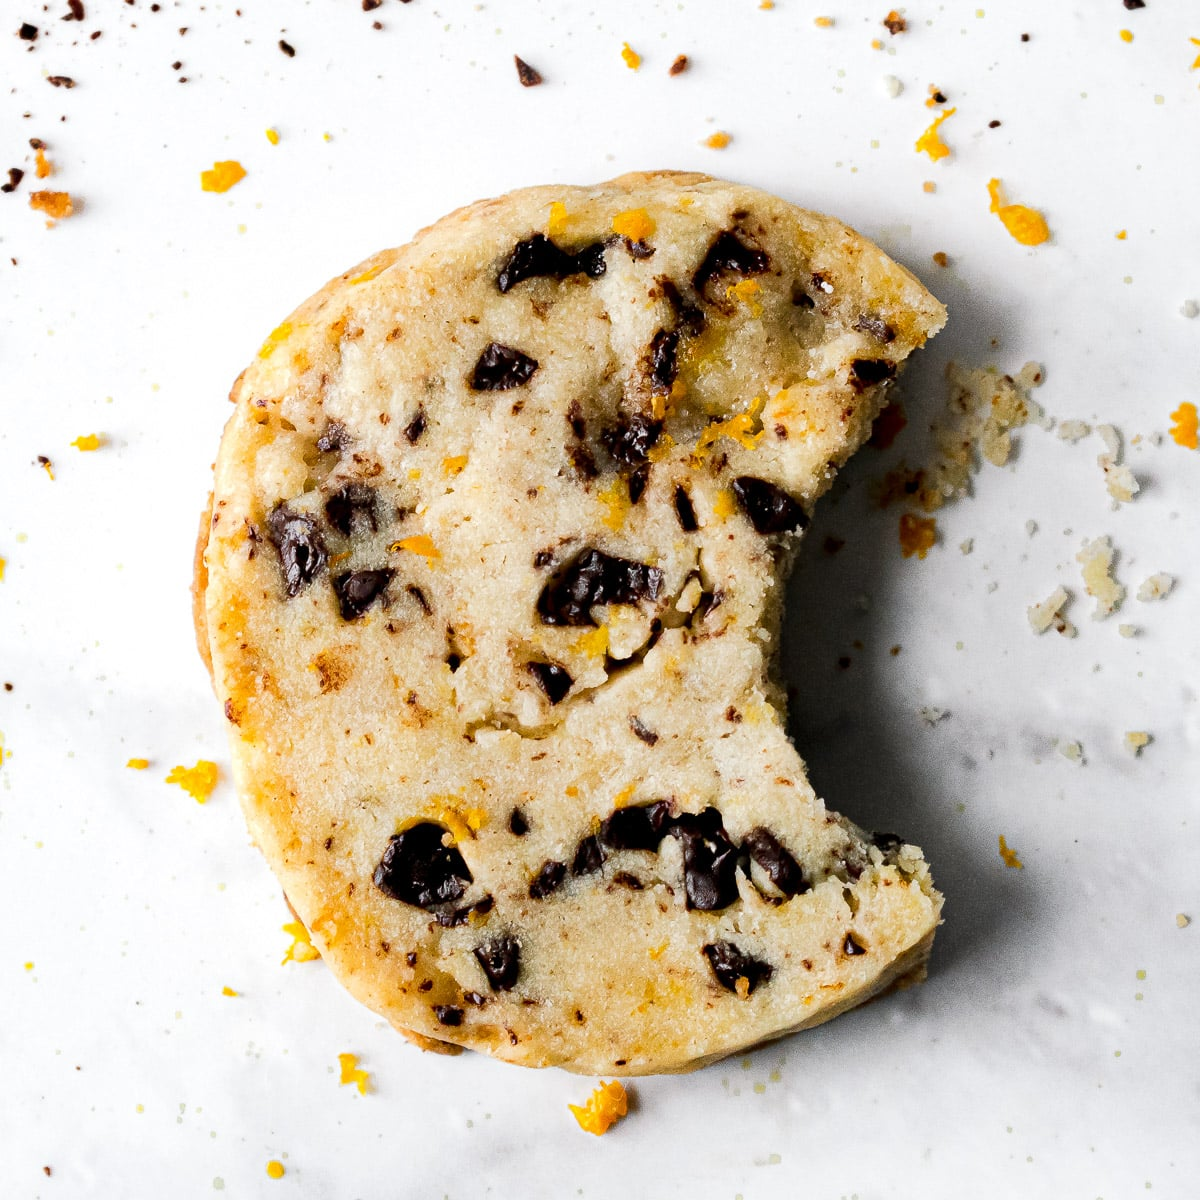 chocolate orange cookie with a bite taken out